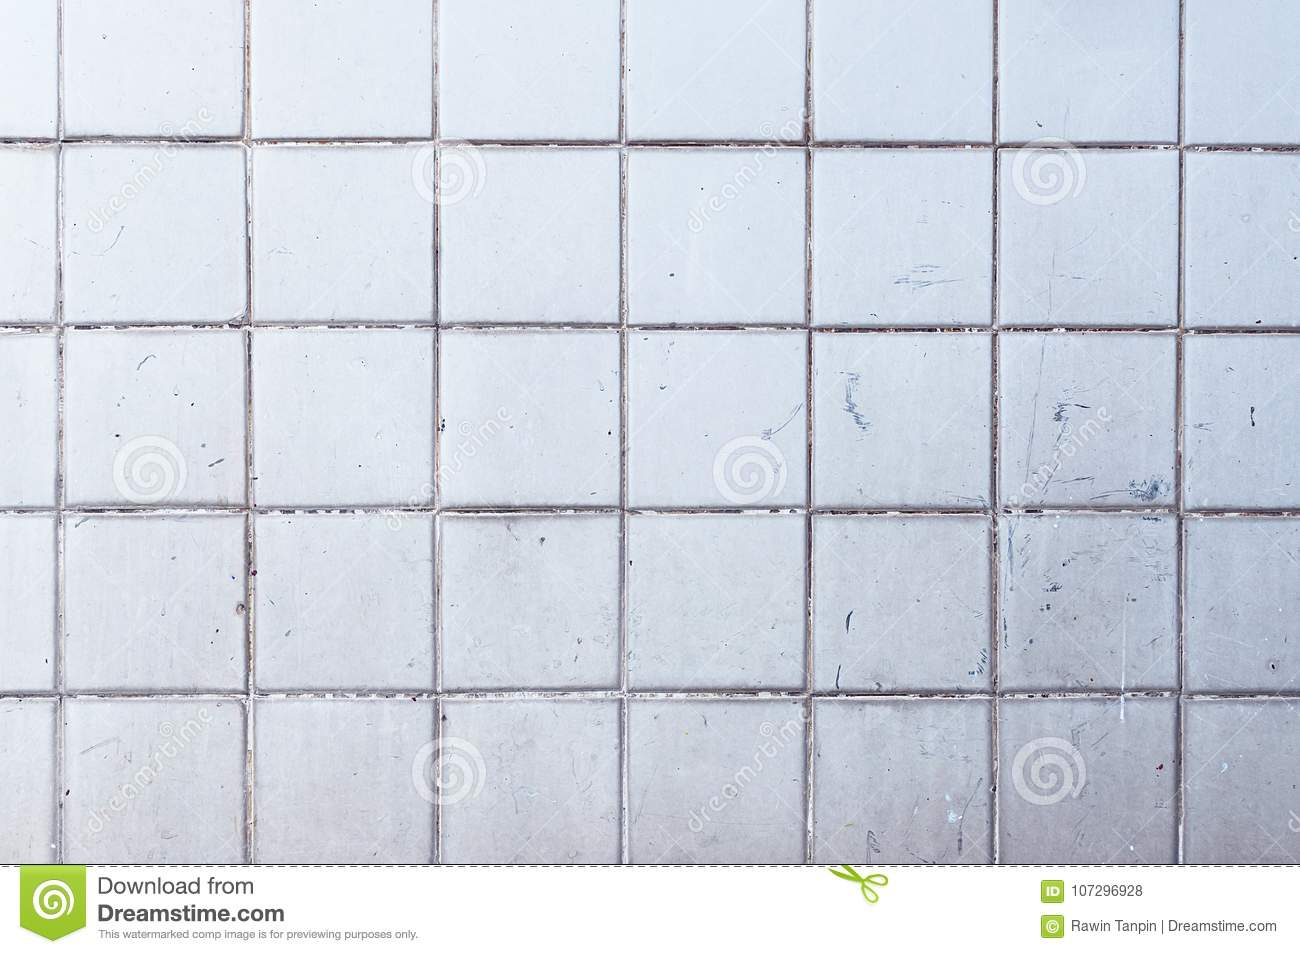 Old Grunge Ceramic Tile Wall Texture Stock Photo - Image of history ...